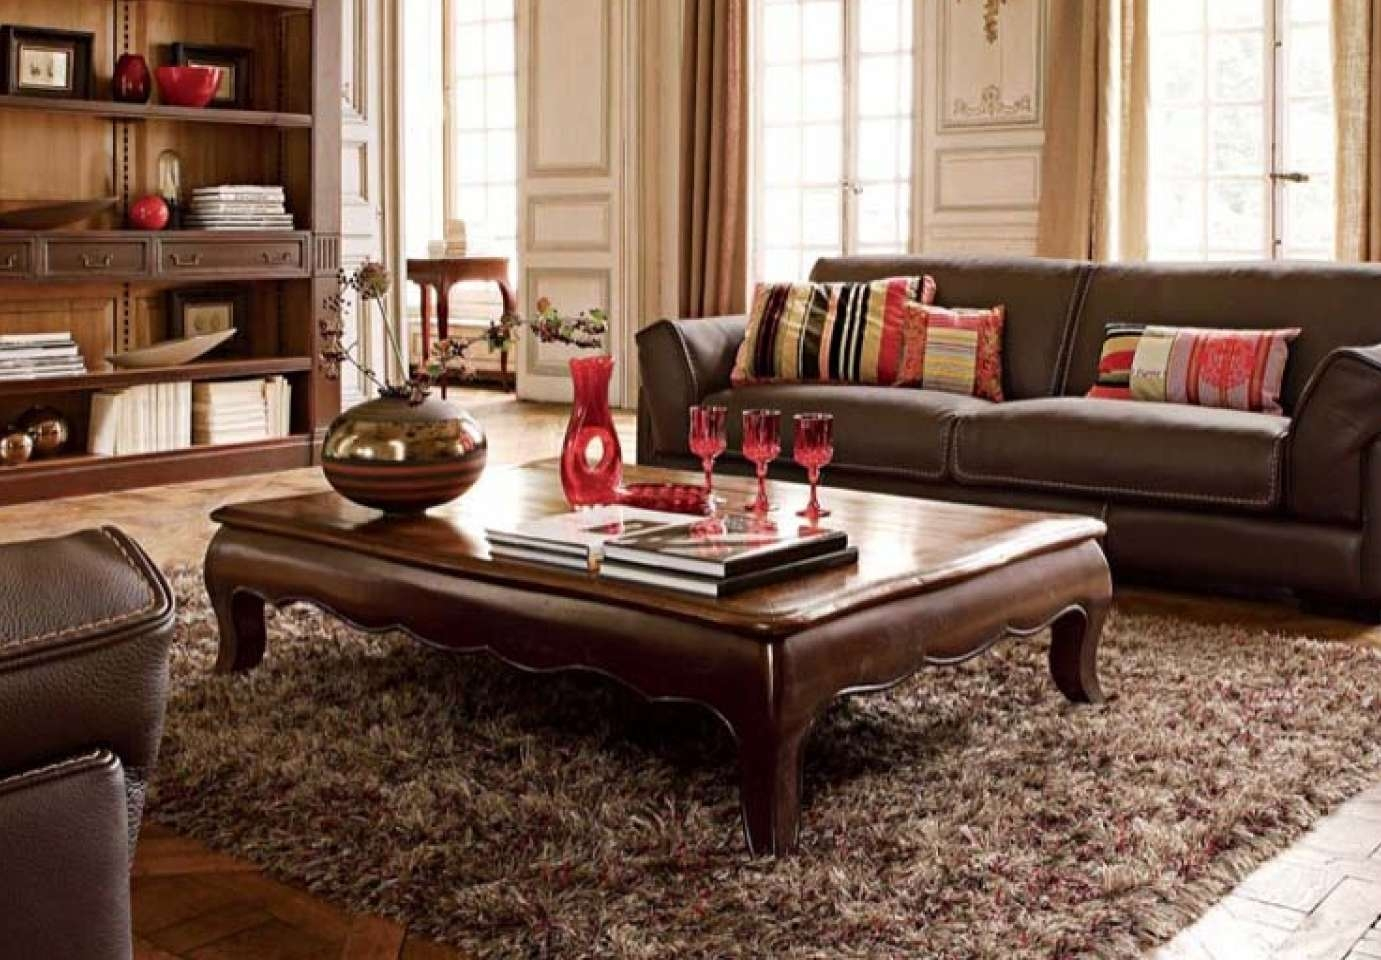 Elegant Large Coffee Table For Interior Design – Large Coffee In Trendy Extra Large Square Coffee Tables (View 19 of 20)